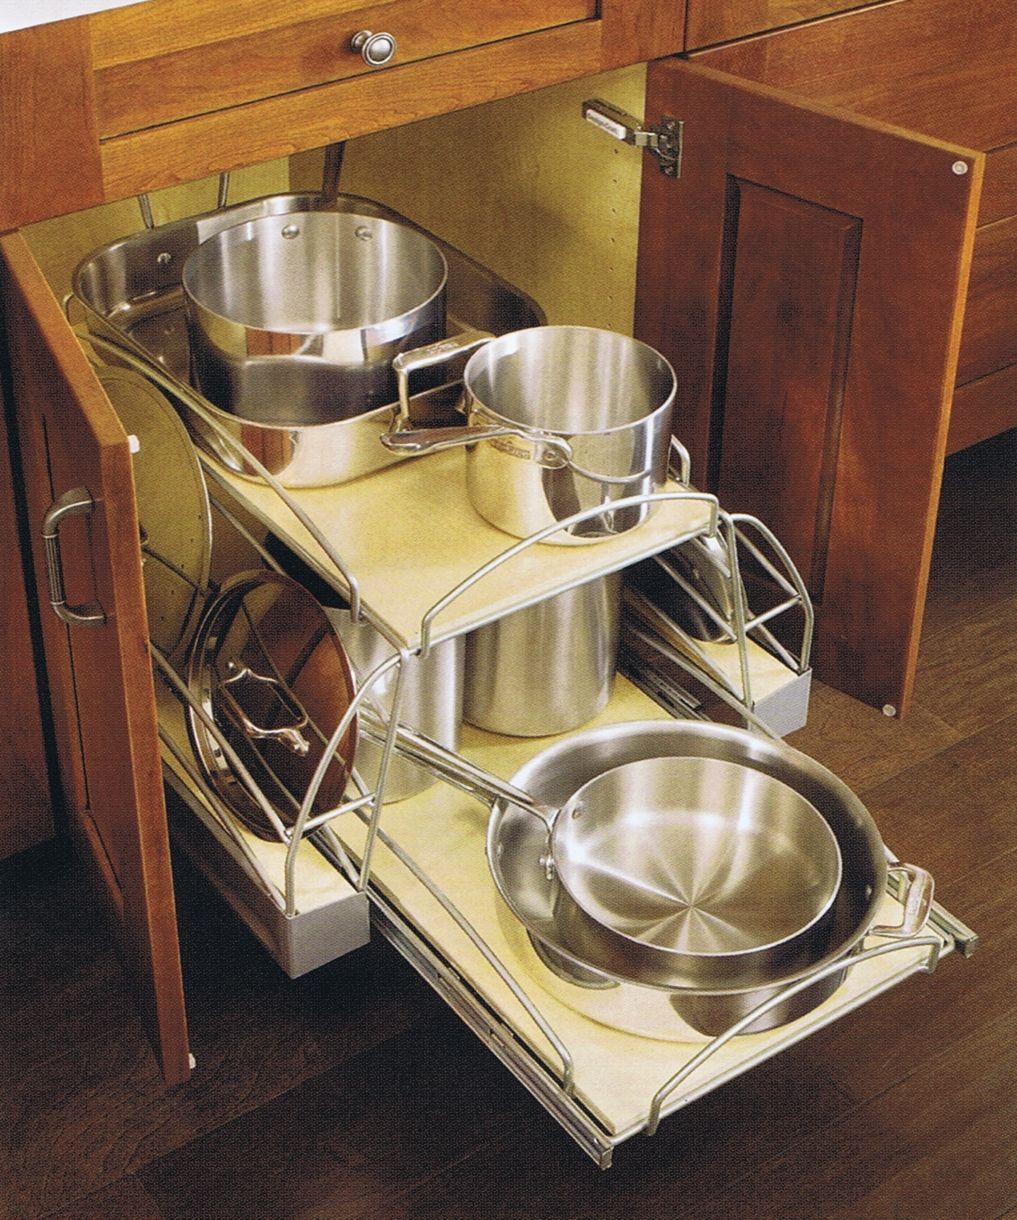 design craft cabinetry organization pan storage kitchen utensil organization diy kitchen on kitchen organization pots and pans id=52277